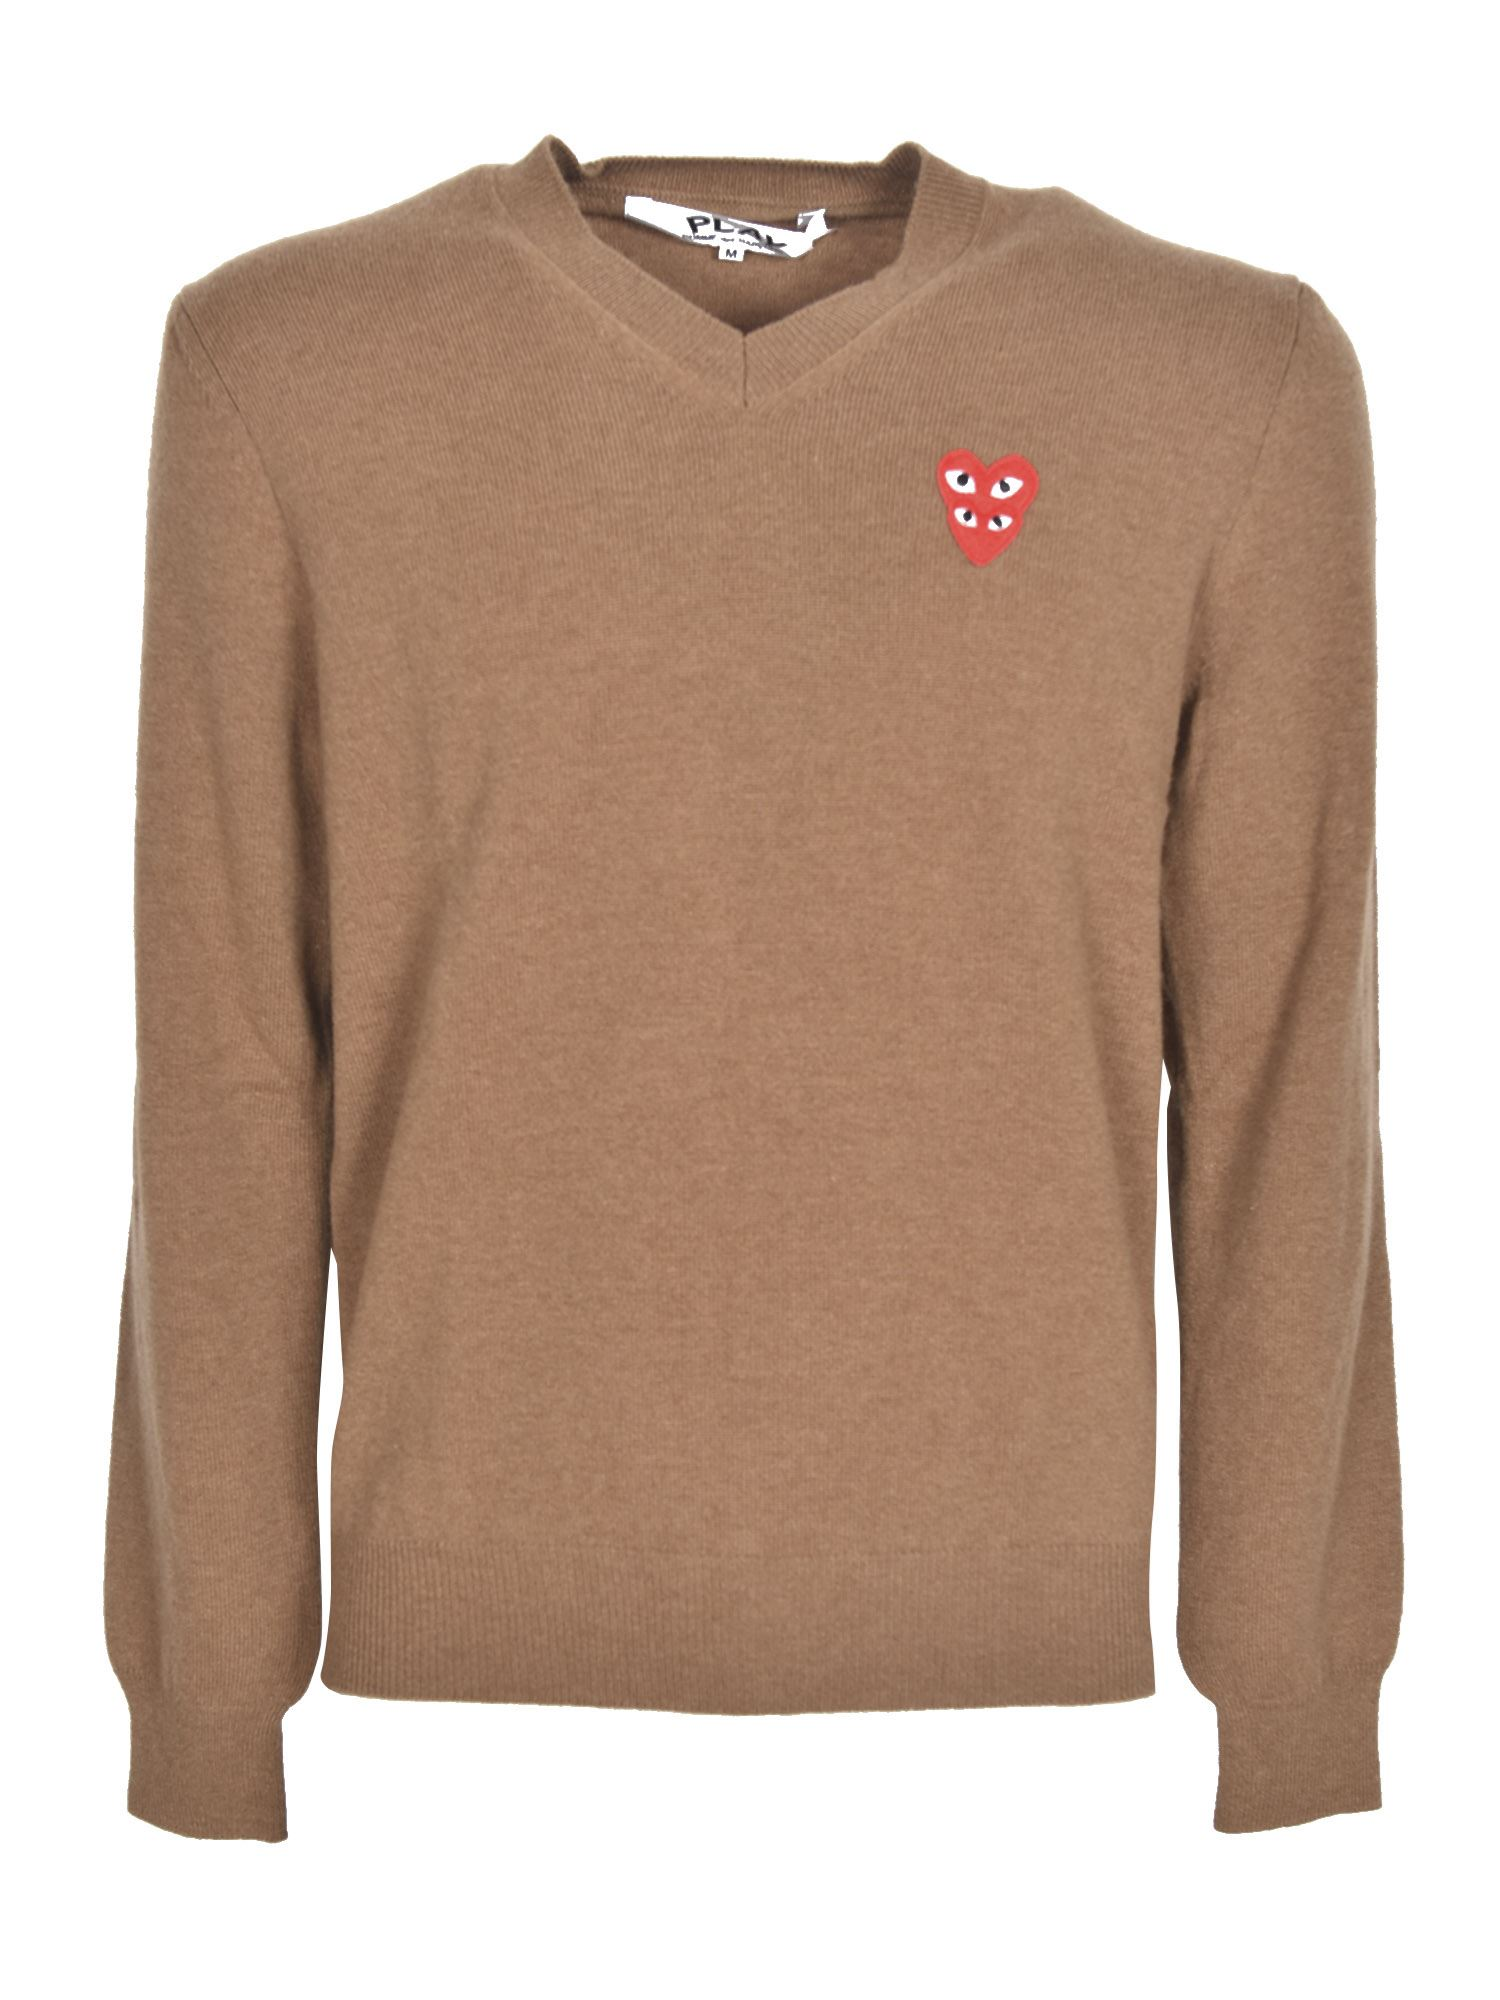 Comme Des Garçons Play DOUBLE RED HEART SWEATER IN CAMEL